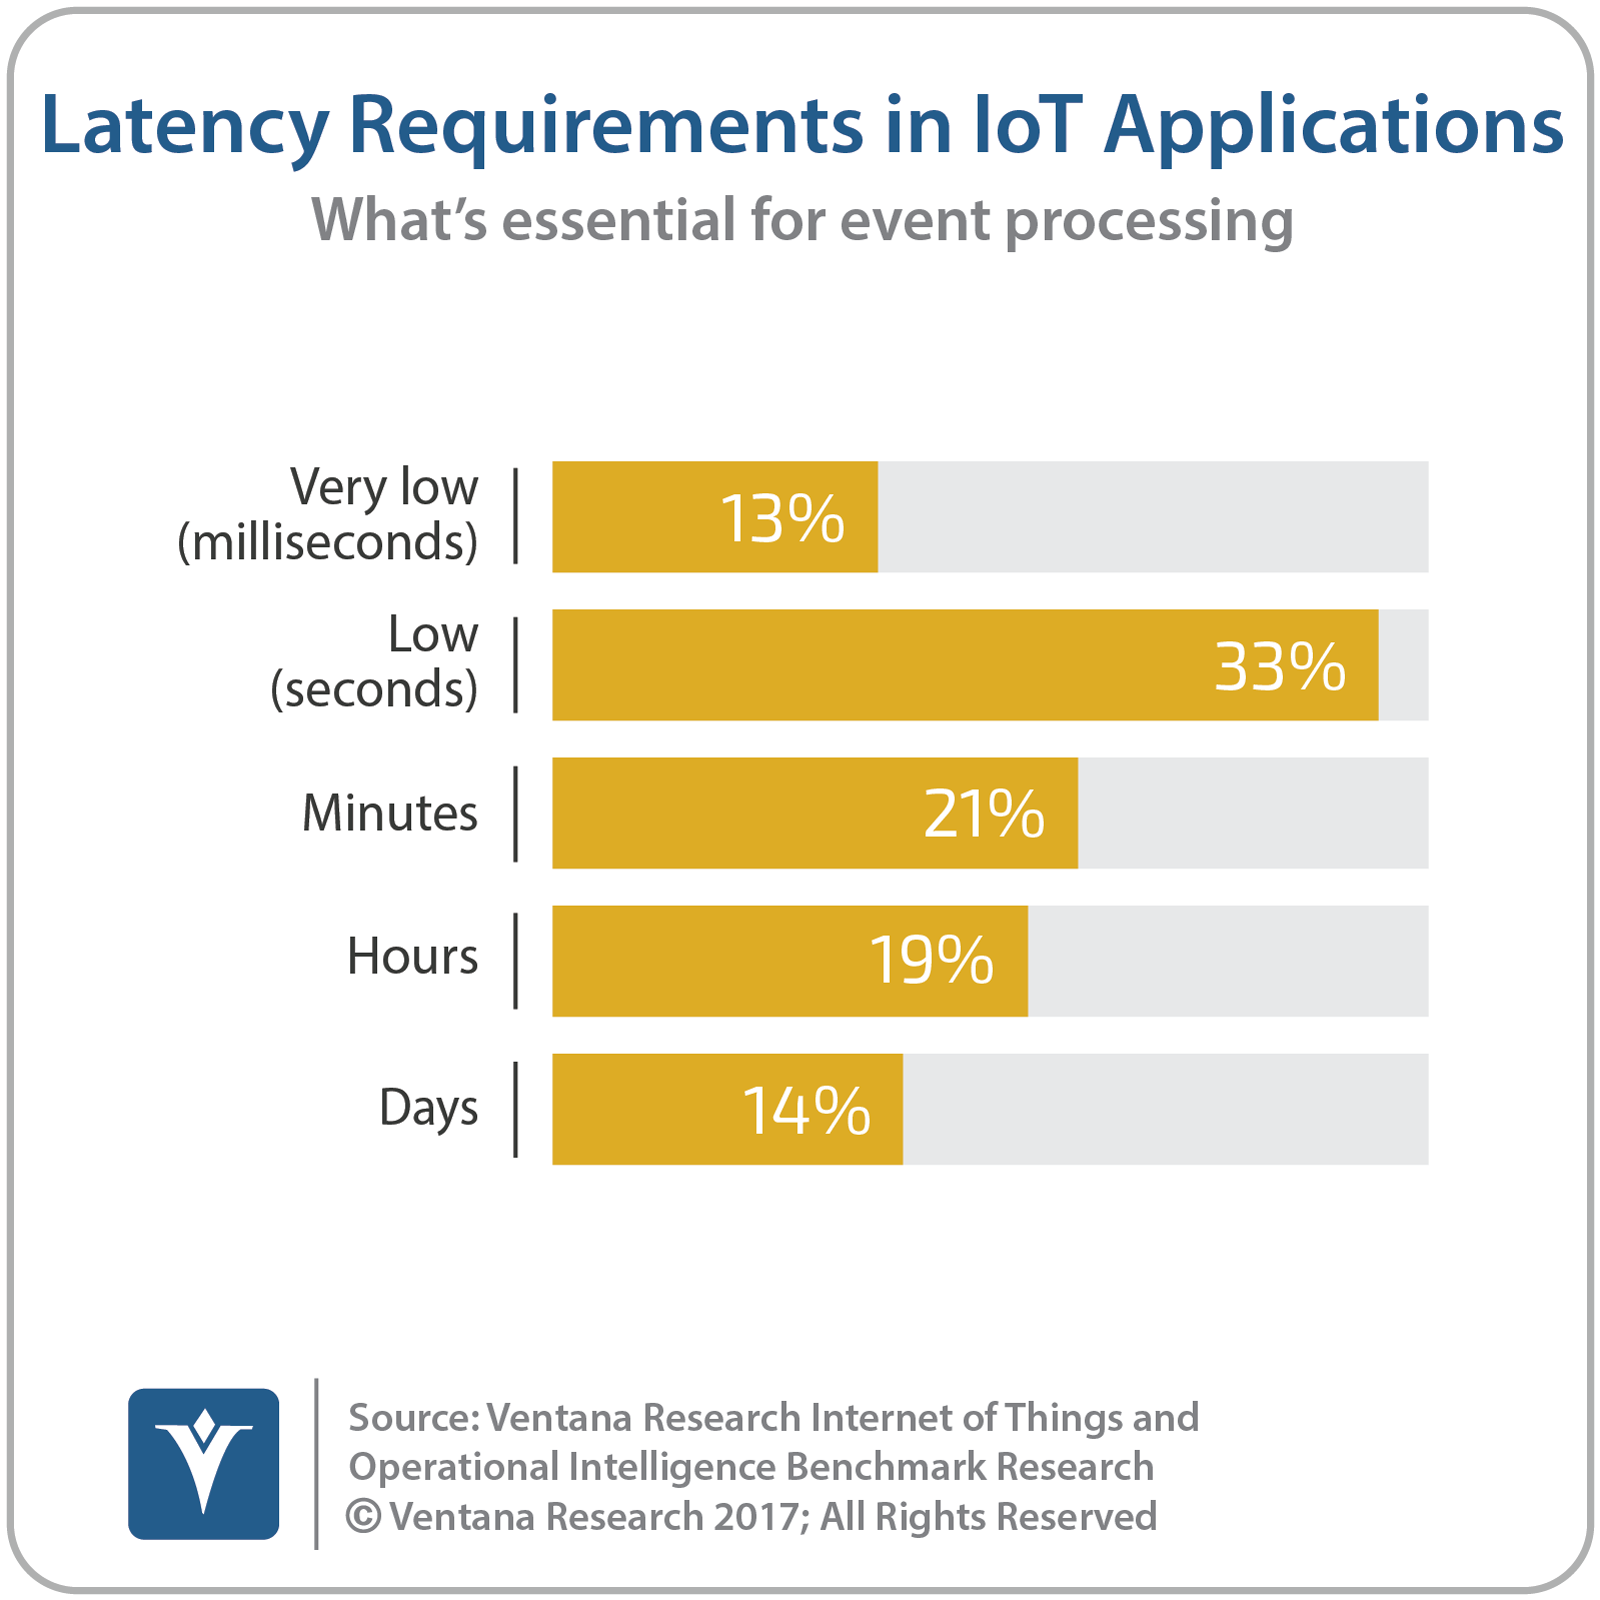 vr_IoT_and_OI_15_latency_in_IoT_applications-1.png